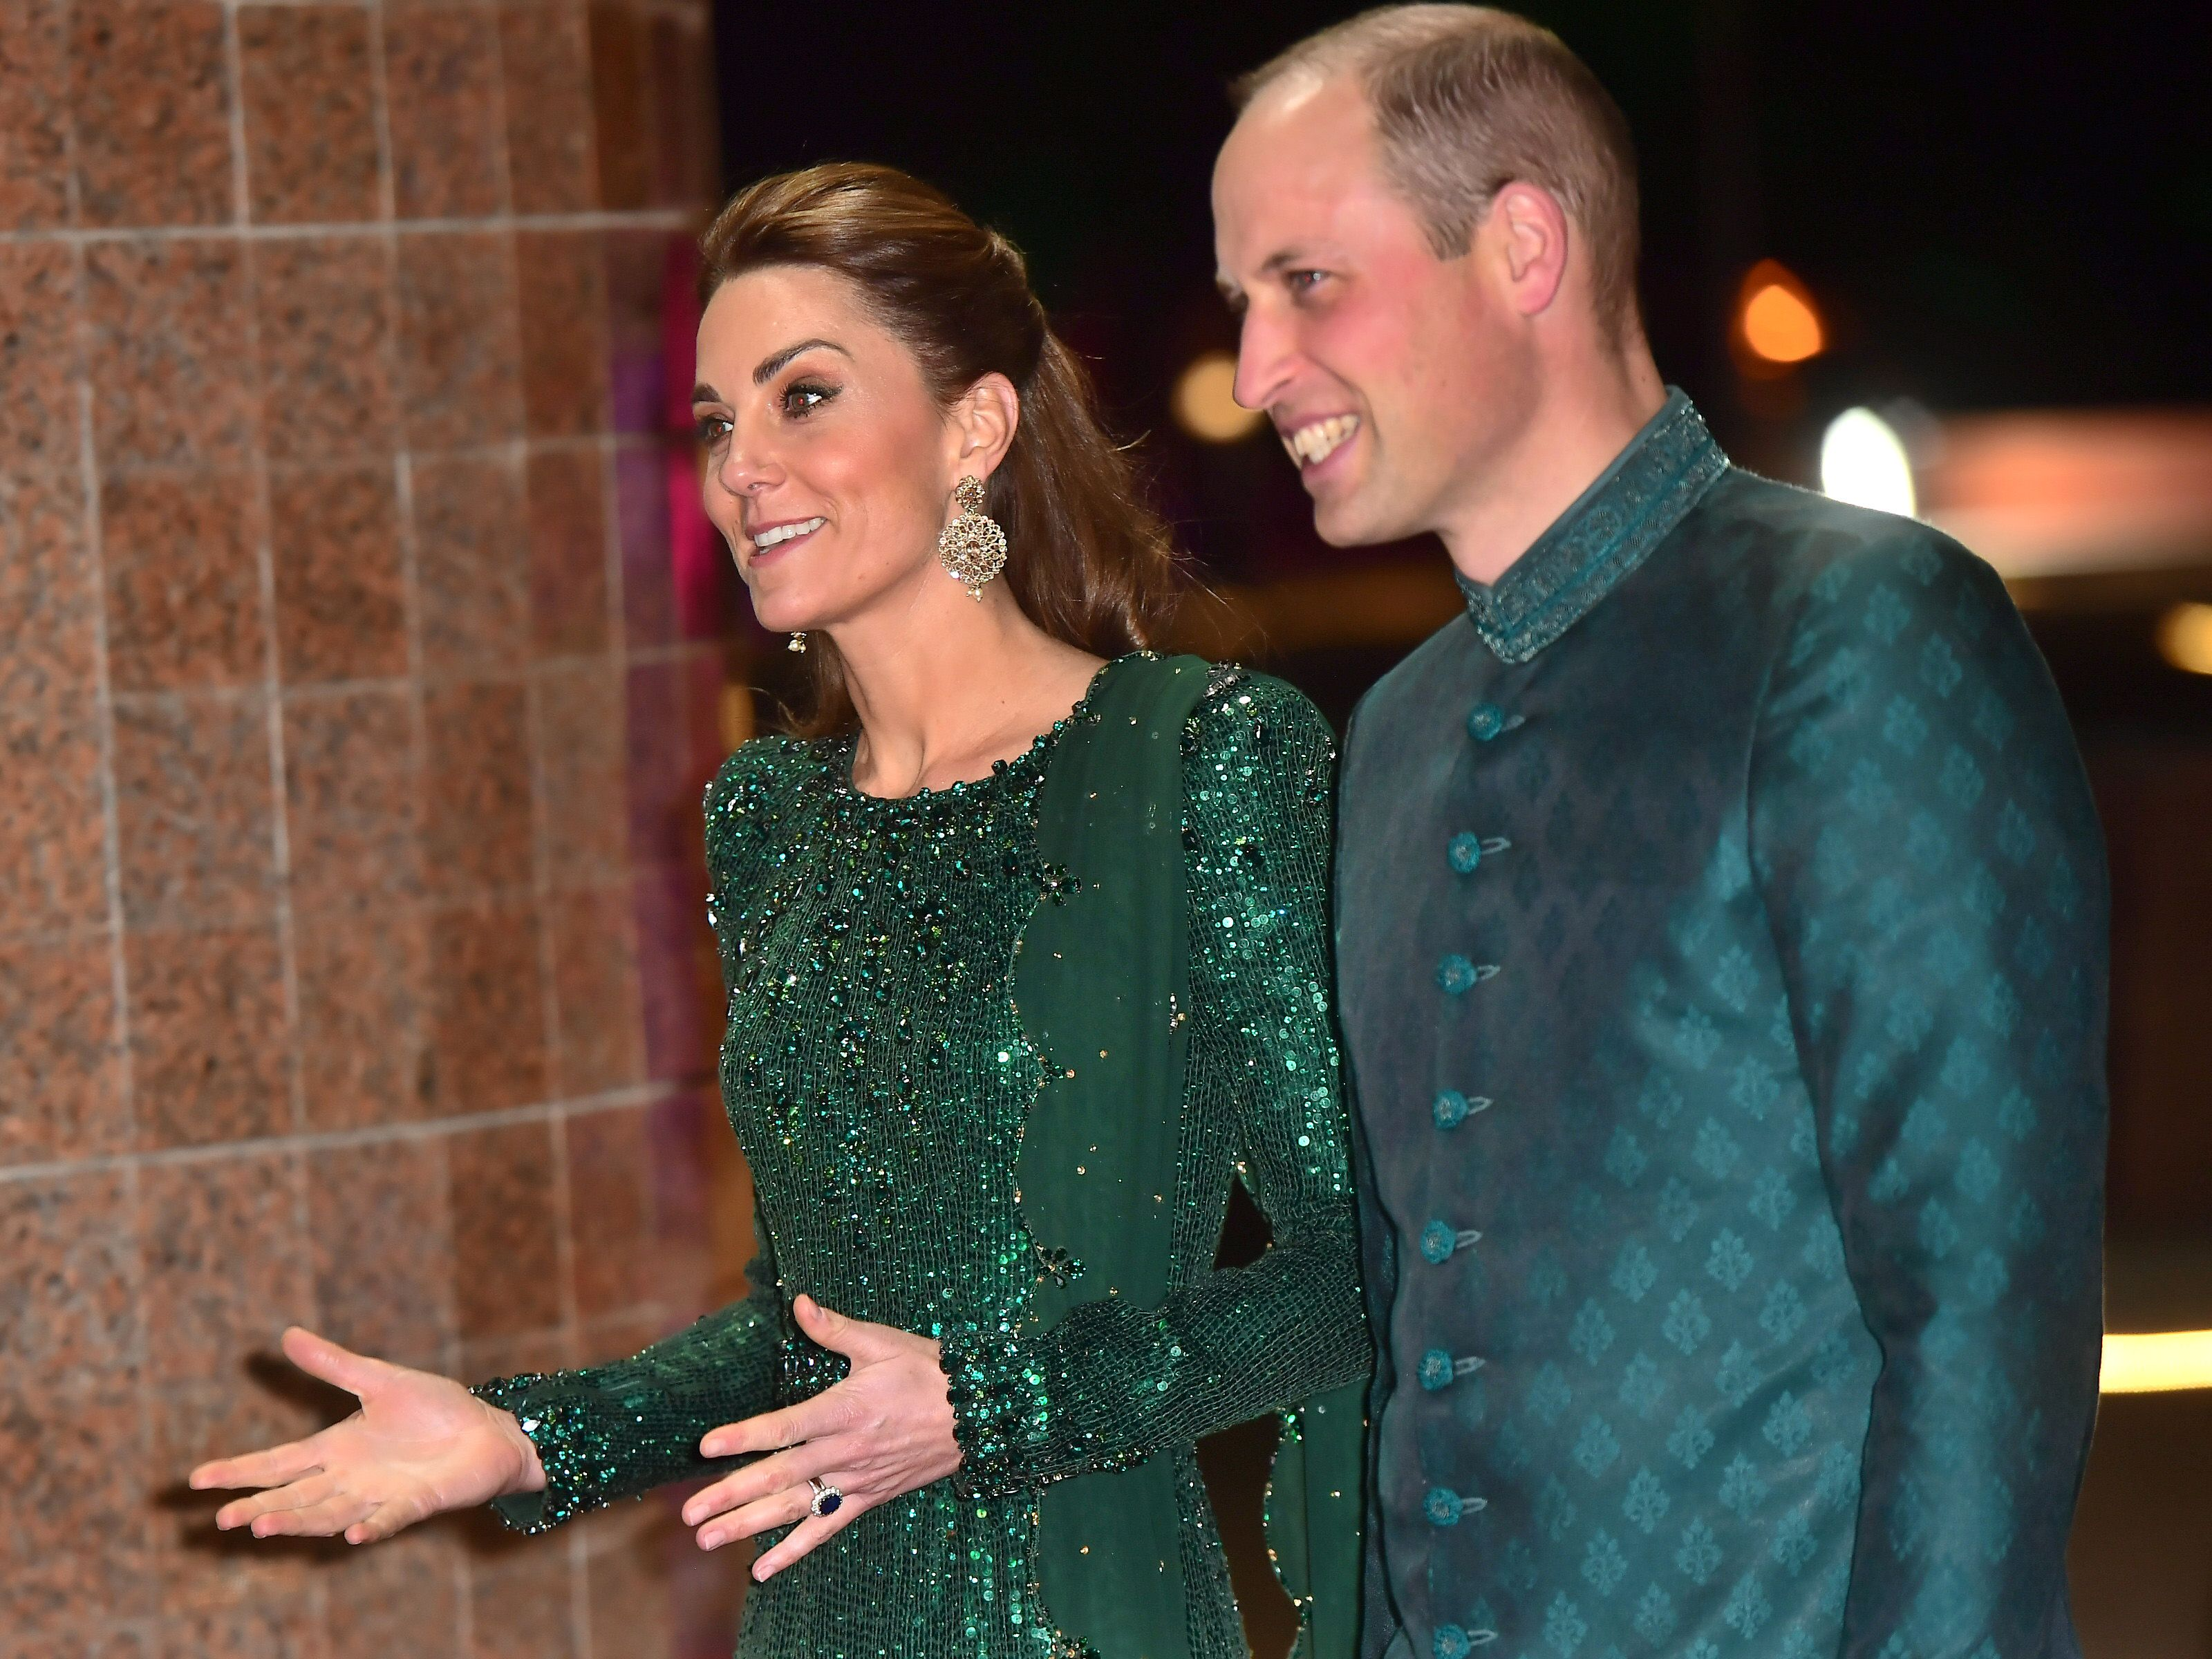 Kate Middleton Finishes Off Her First Full Day in Pakistan Wearing a Sparkly Green Dress